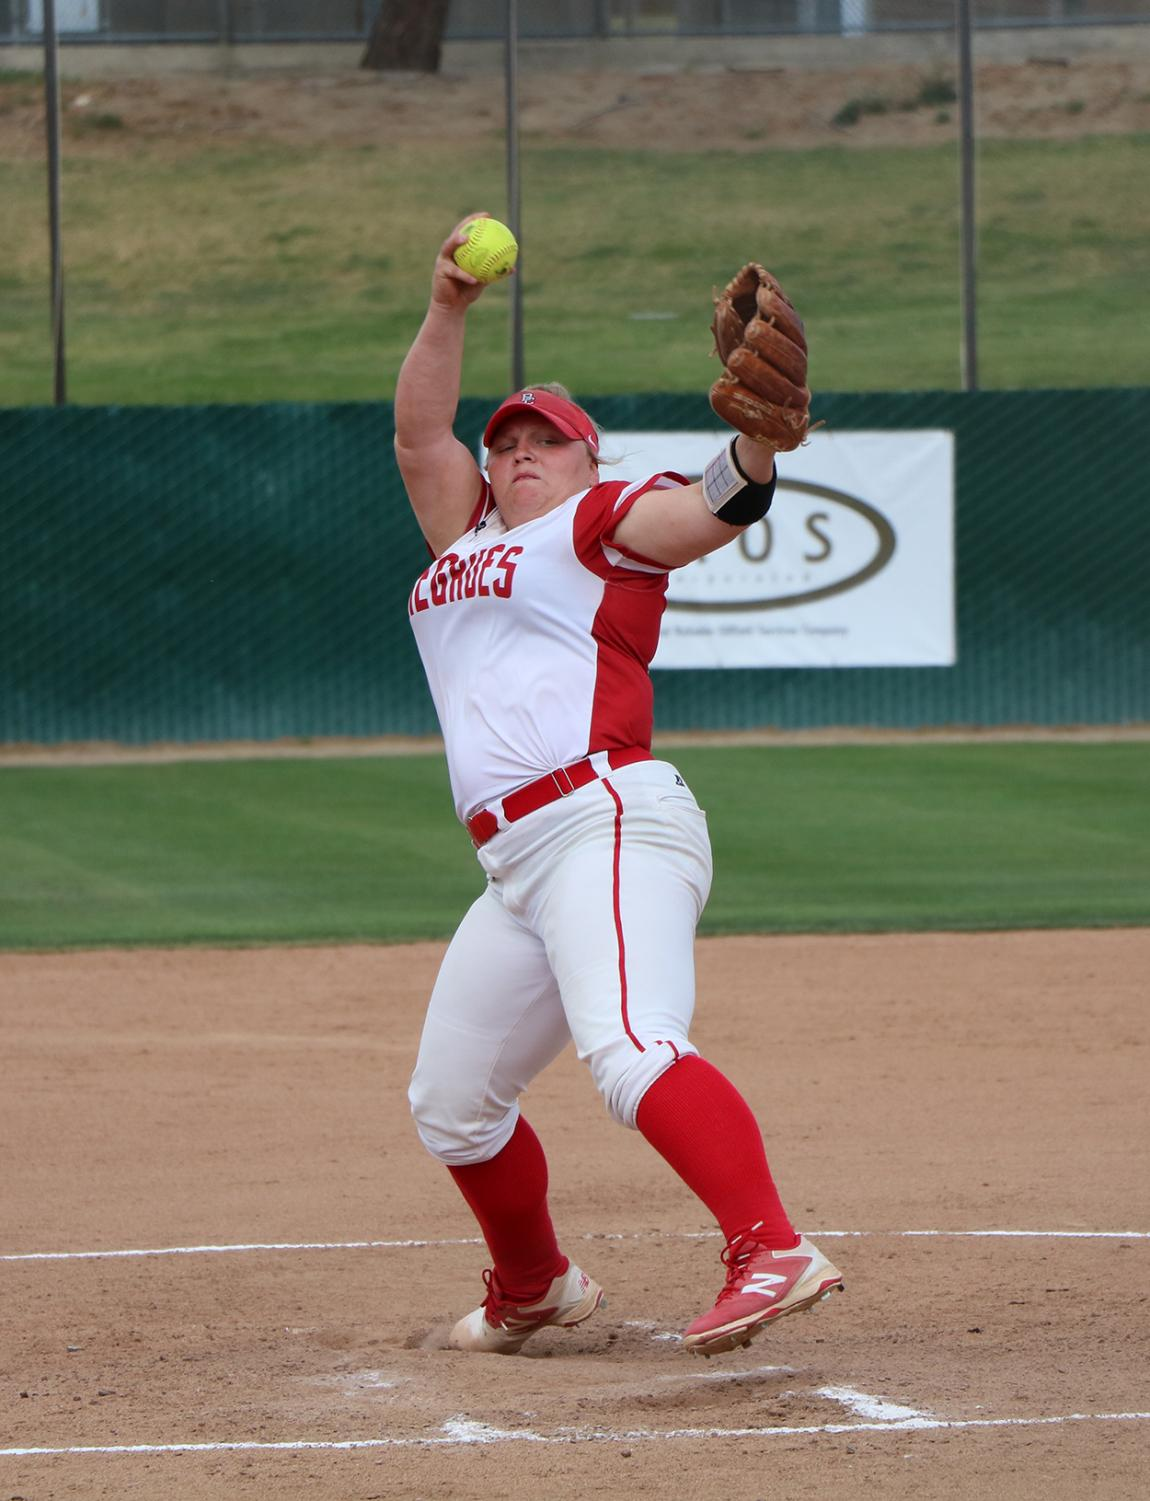 BC's softball pitcher Kylee Fahy during a conference game at the Dean & Adah Gay Sports Complex. Fahy is currently leading the state with strikeouts.